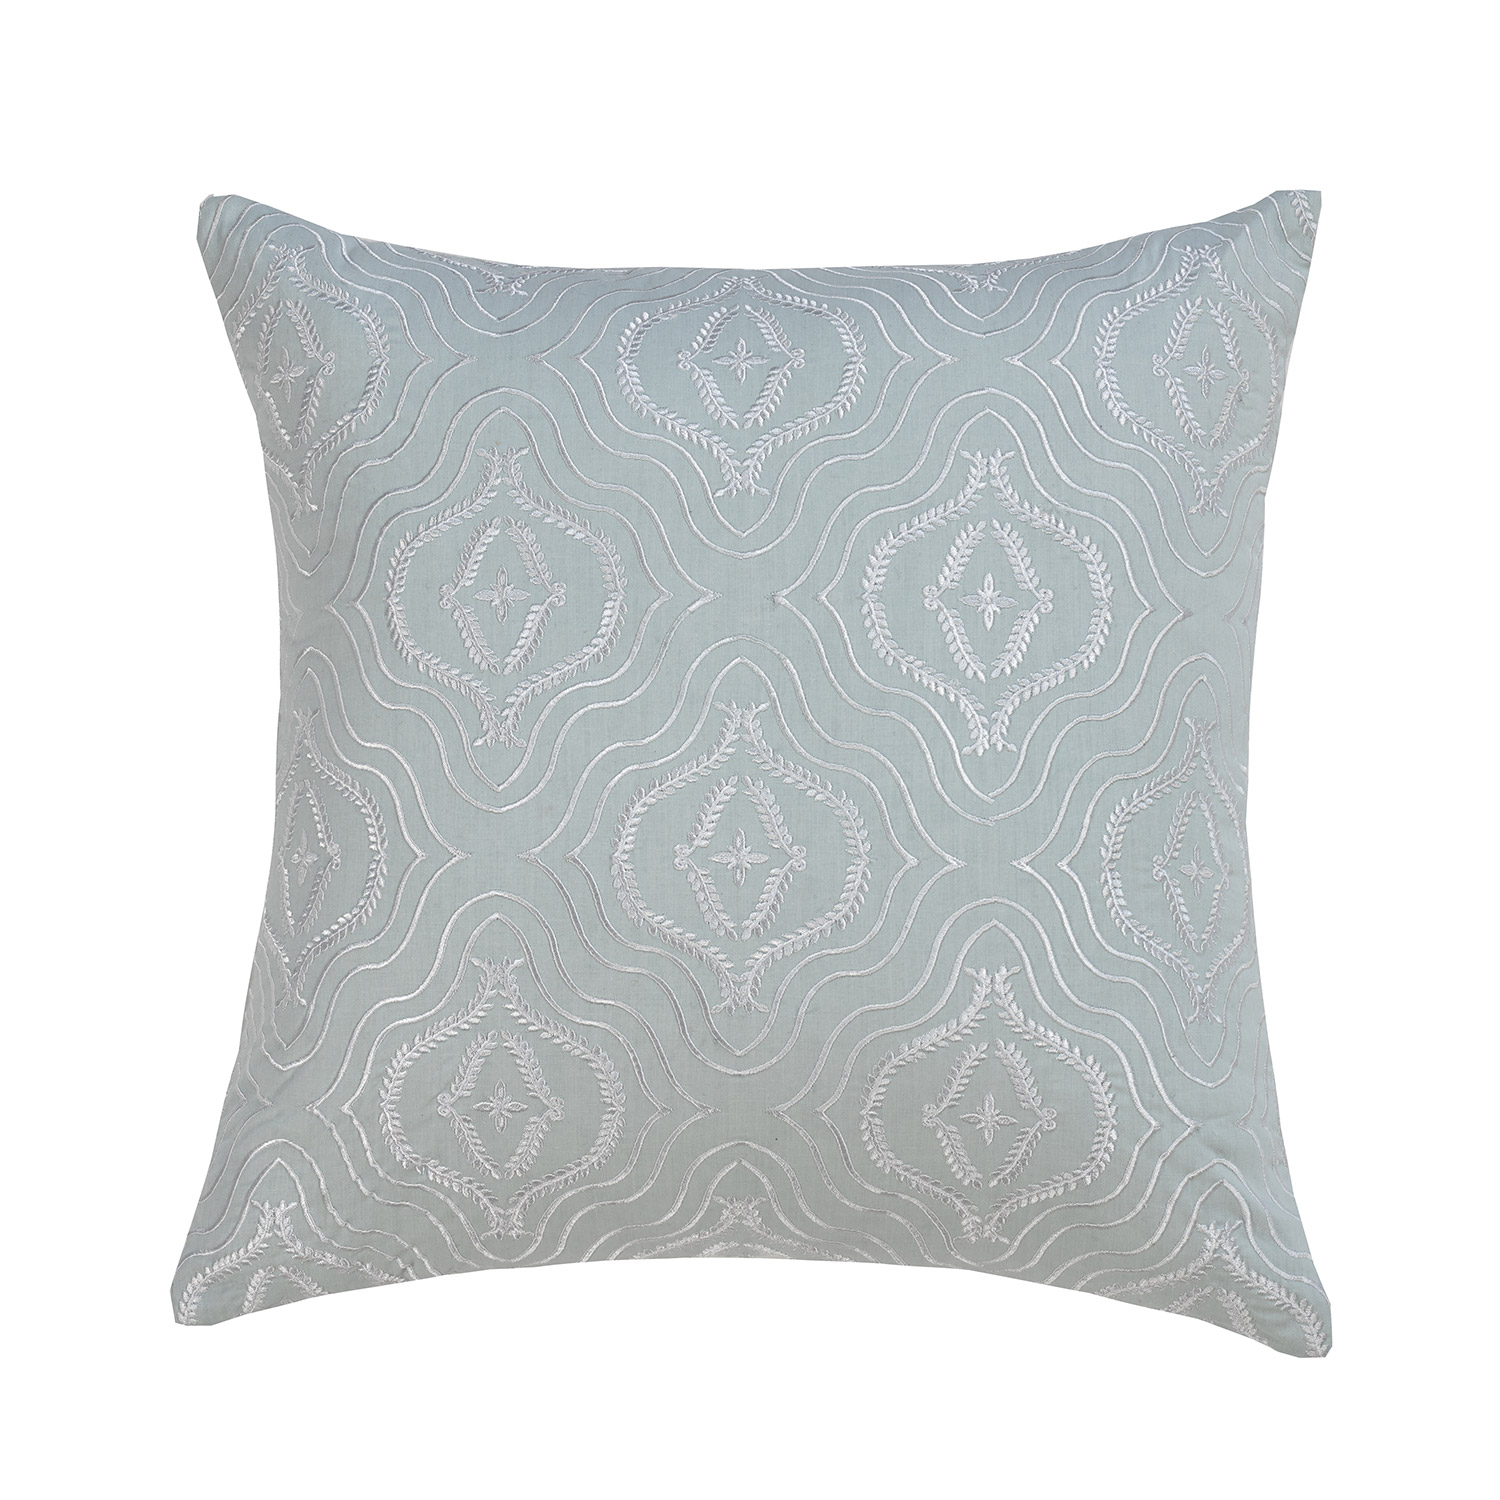 Harmony Duck Egg Floral Filled Square Cushion